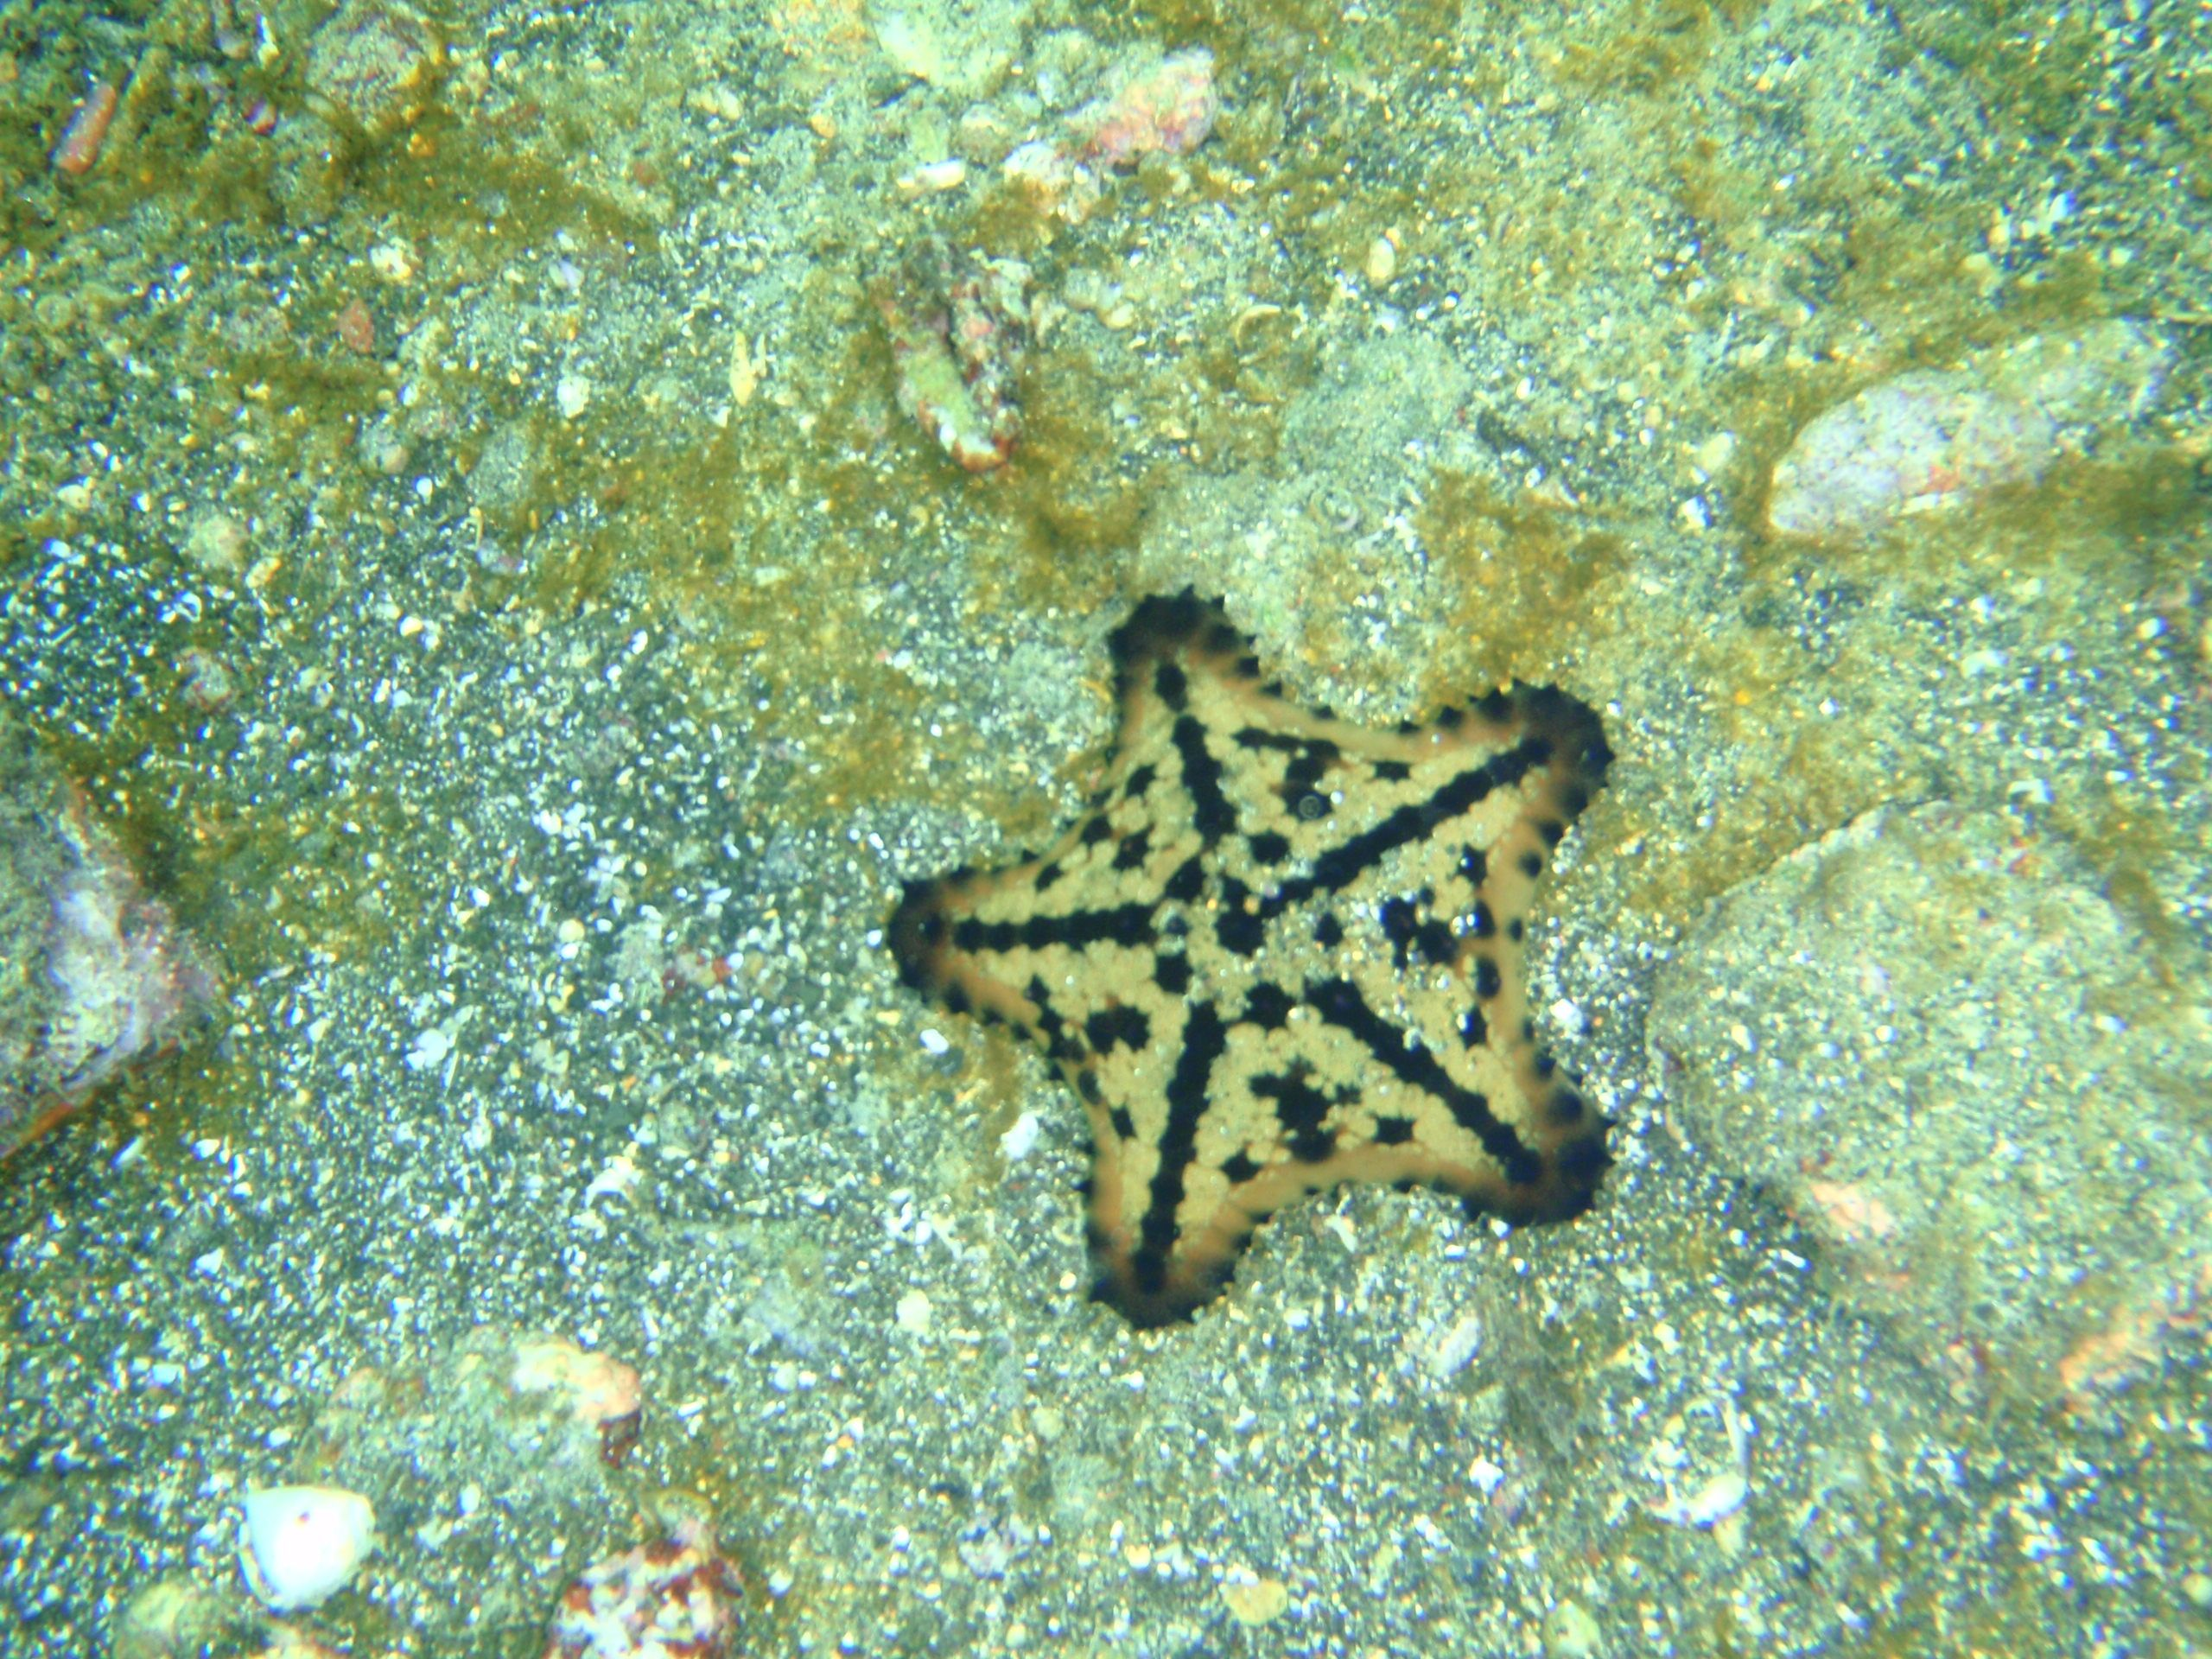 Chocolate Chip Starfish In The Galapagos Islands Chocolate Chip Starfish Galapagos Islands Galapagos